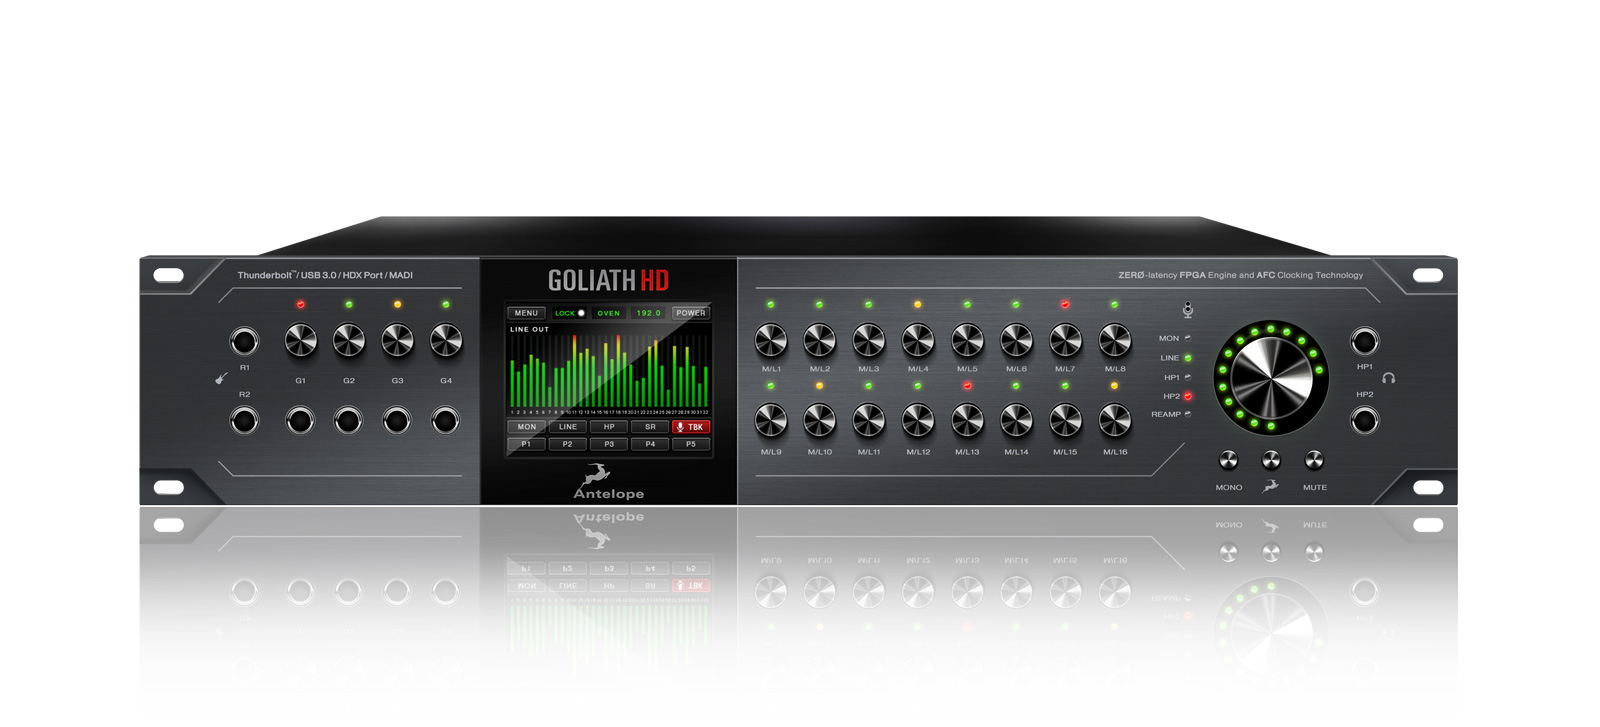 Goliath Hd Pro Tools Native Ready Antelope Audio Highdefinition Multimedia Interface Connector Diagram The Dedicated Android Ios Compatible Mobile App Will Allow You To Turn Your Smartphone Or Tablet Into A Powerful Remote